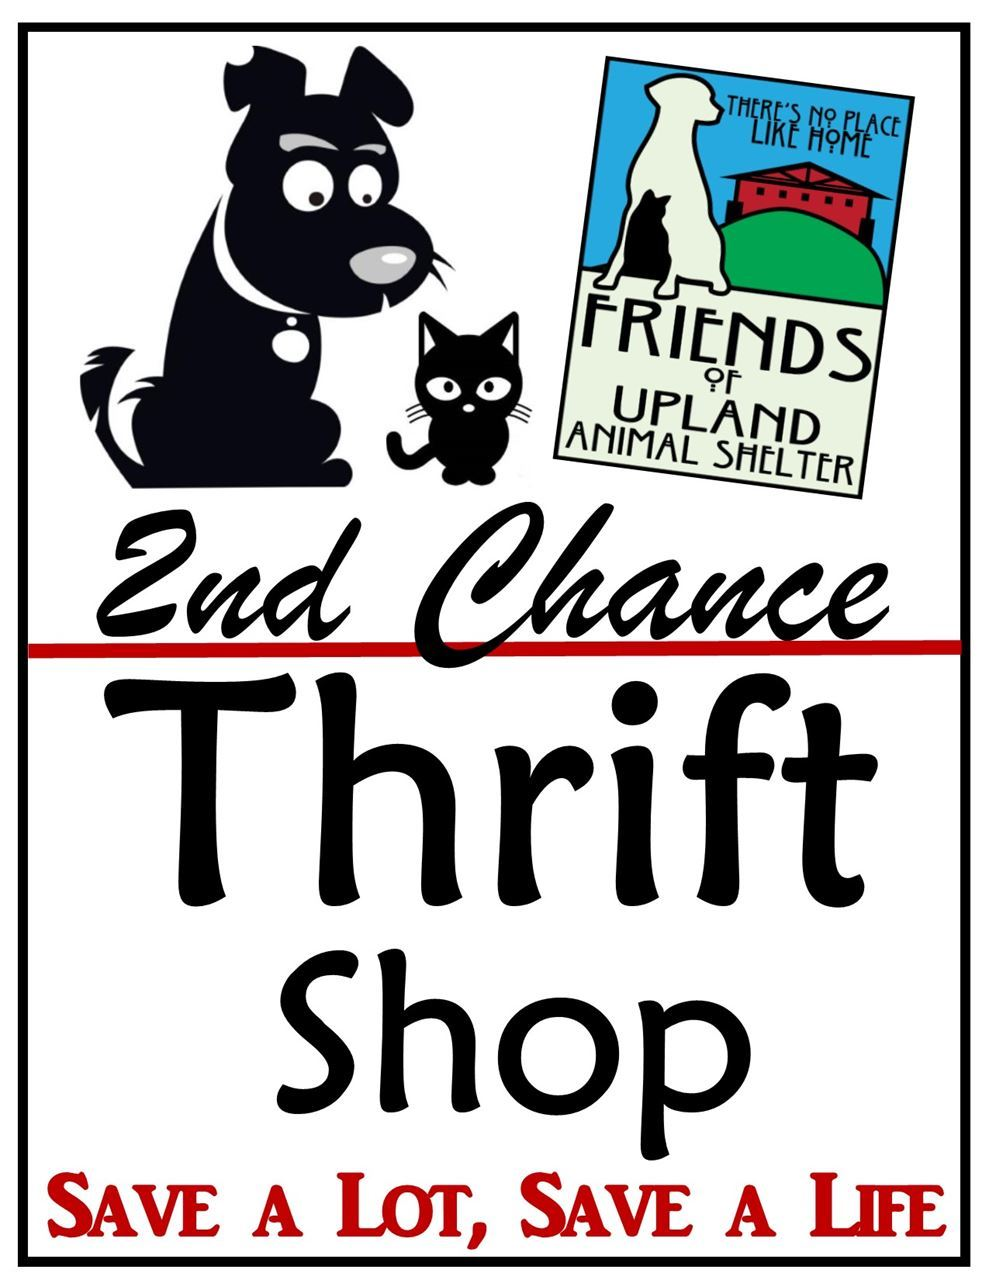 Friends Of Upland Animal Shelter 2nd Chance Thrift Shop